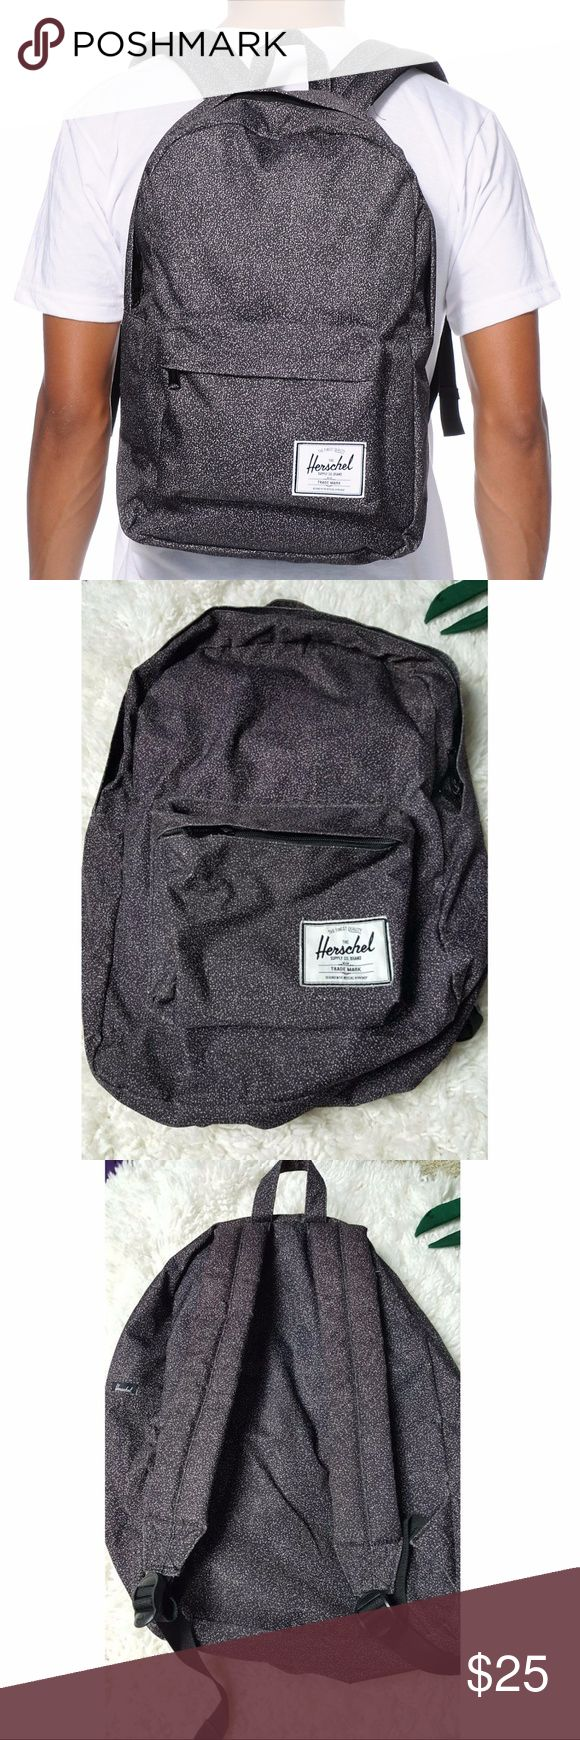 """Herschel Purple Speckled Book Bag Signature coated poly fabric lining. Single front zip pocket and main compartment. Hanger loop at top. Herschel Supply logo patch on front. Padded shoulder straps for comfort. 16.5"""" x 12"""" x 5.75"""". 21L volume capacity.  #1892 Herschel Supply Company Bags Backpacks"""